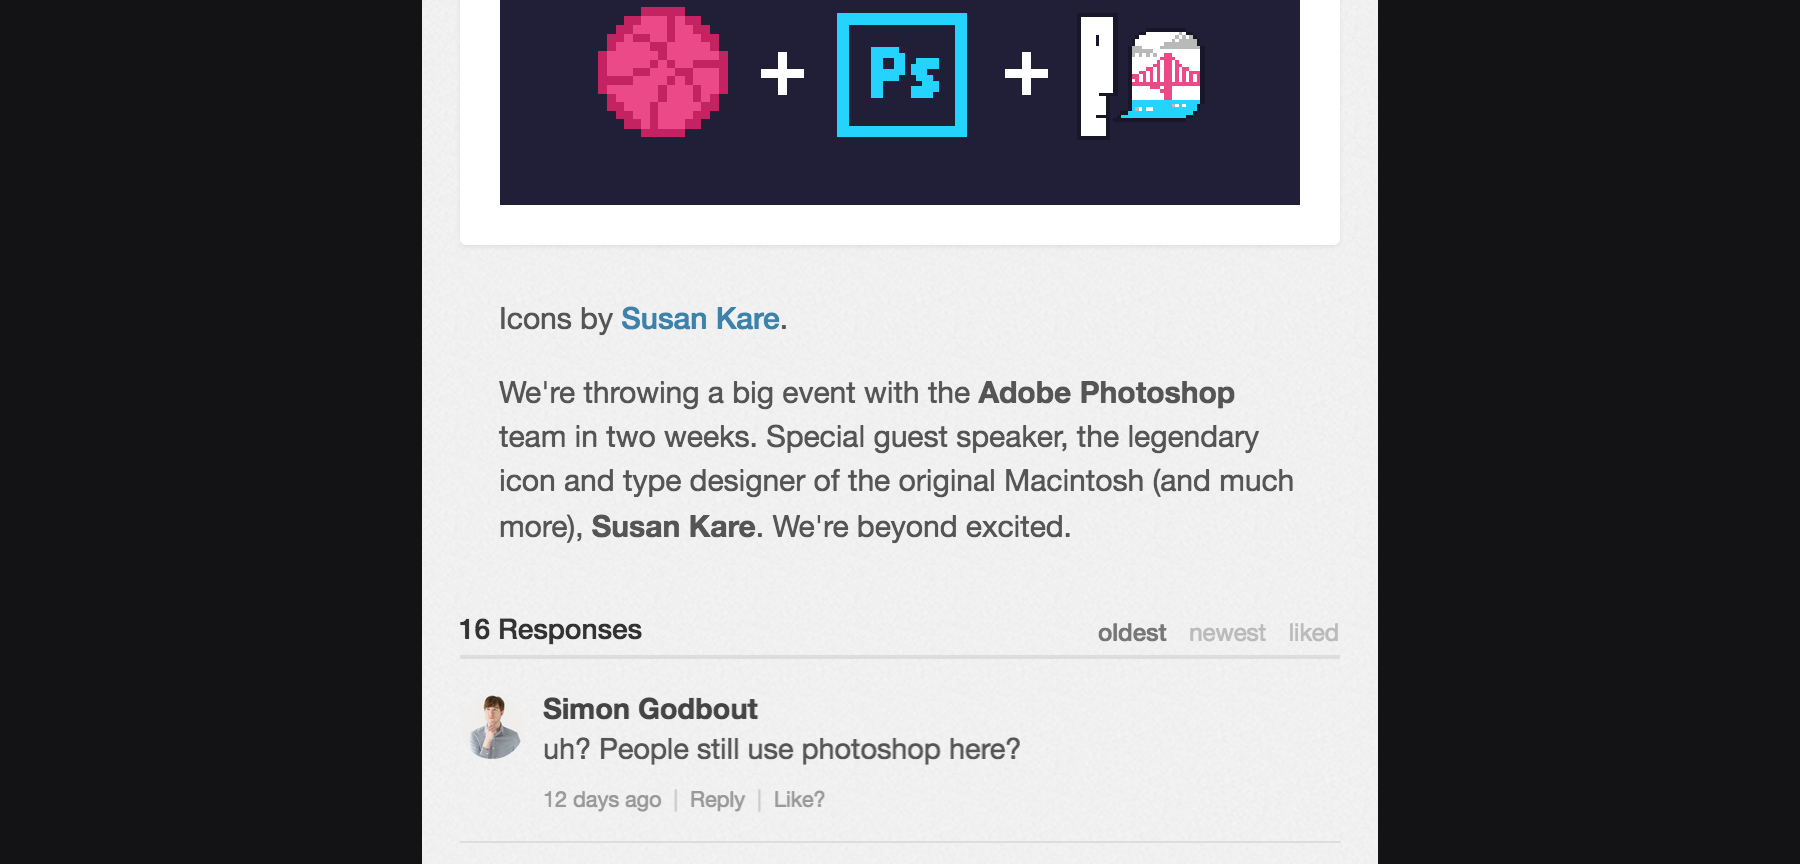 This Dribbble comment went without a response after being seen by 6000 visual designers.